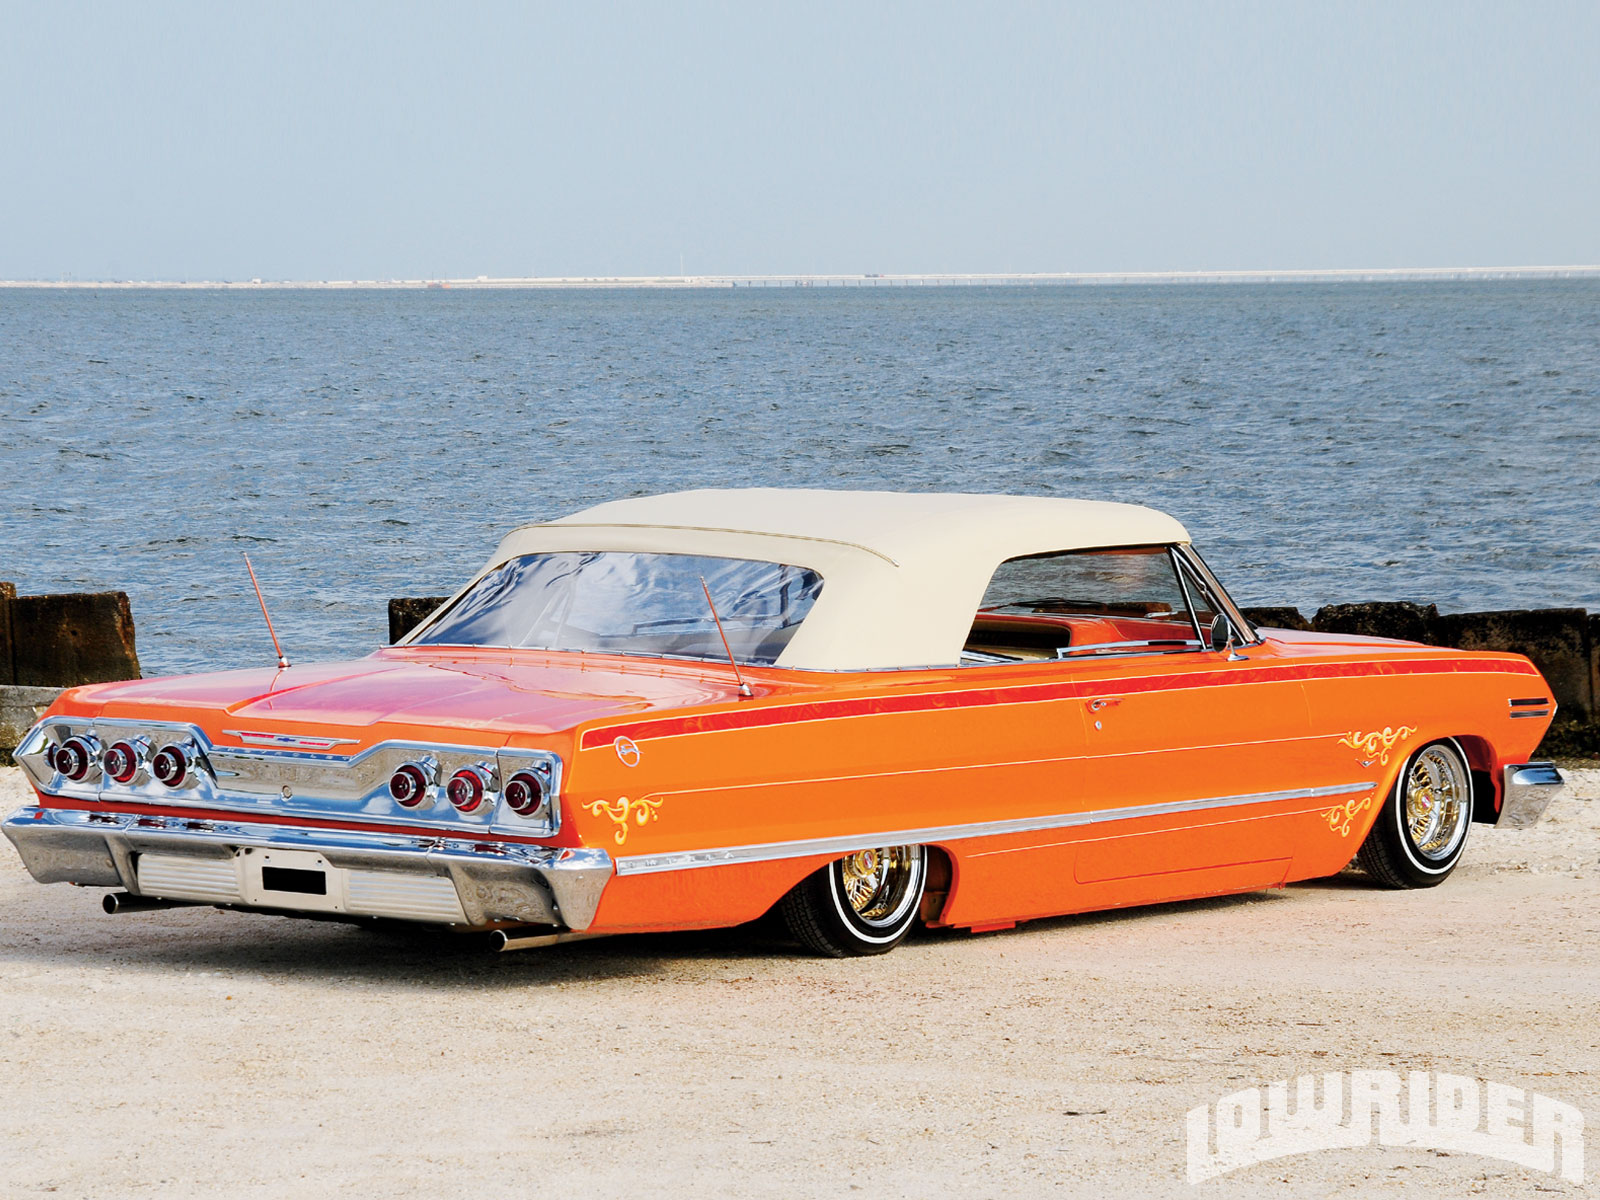 Amazing 1963 Chevrolet Impala Pictures & Backgrounds